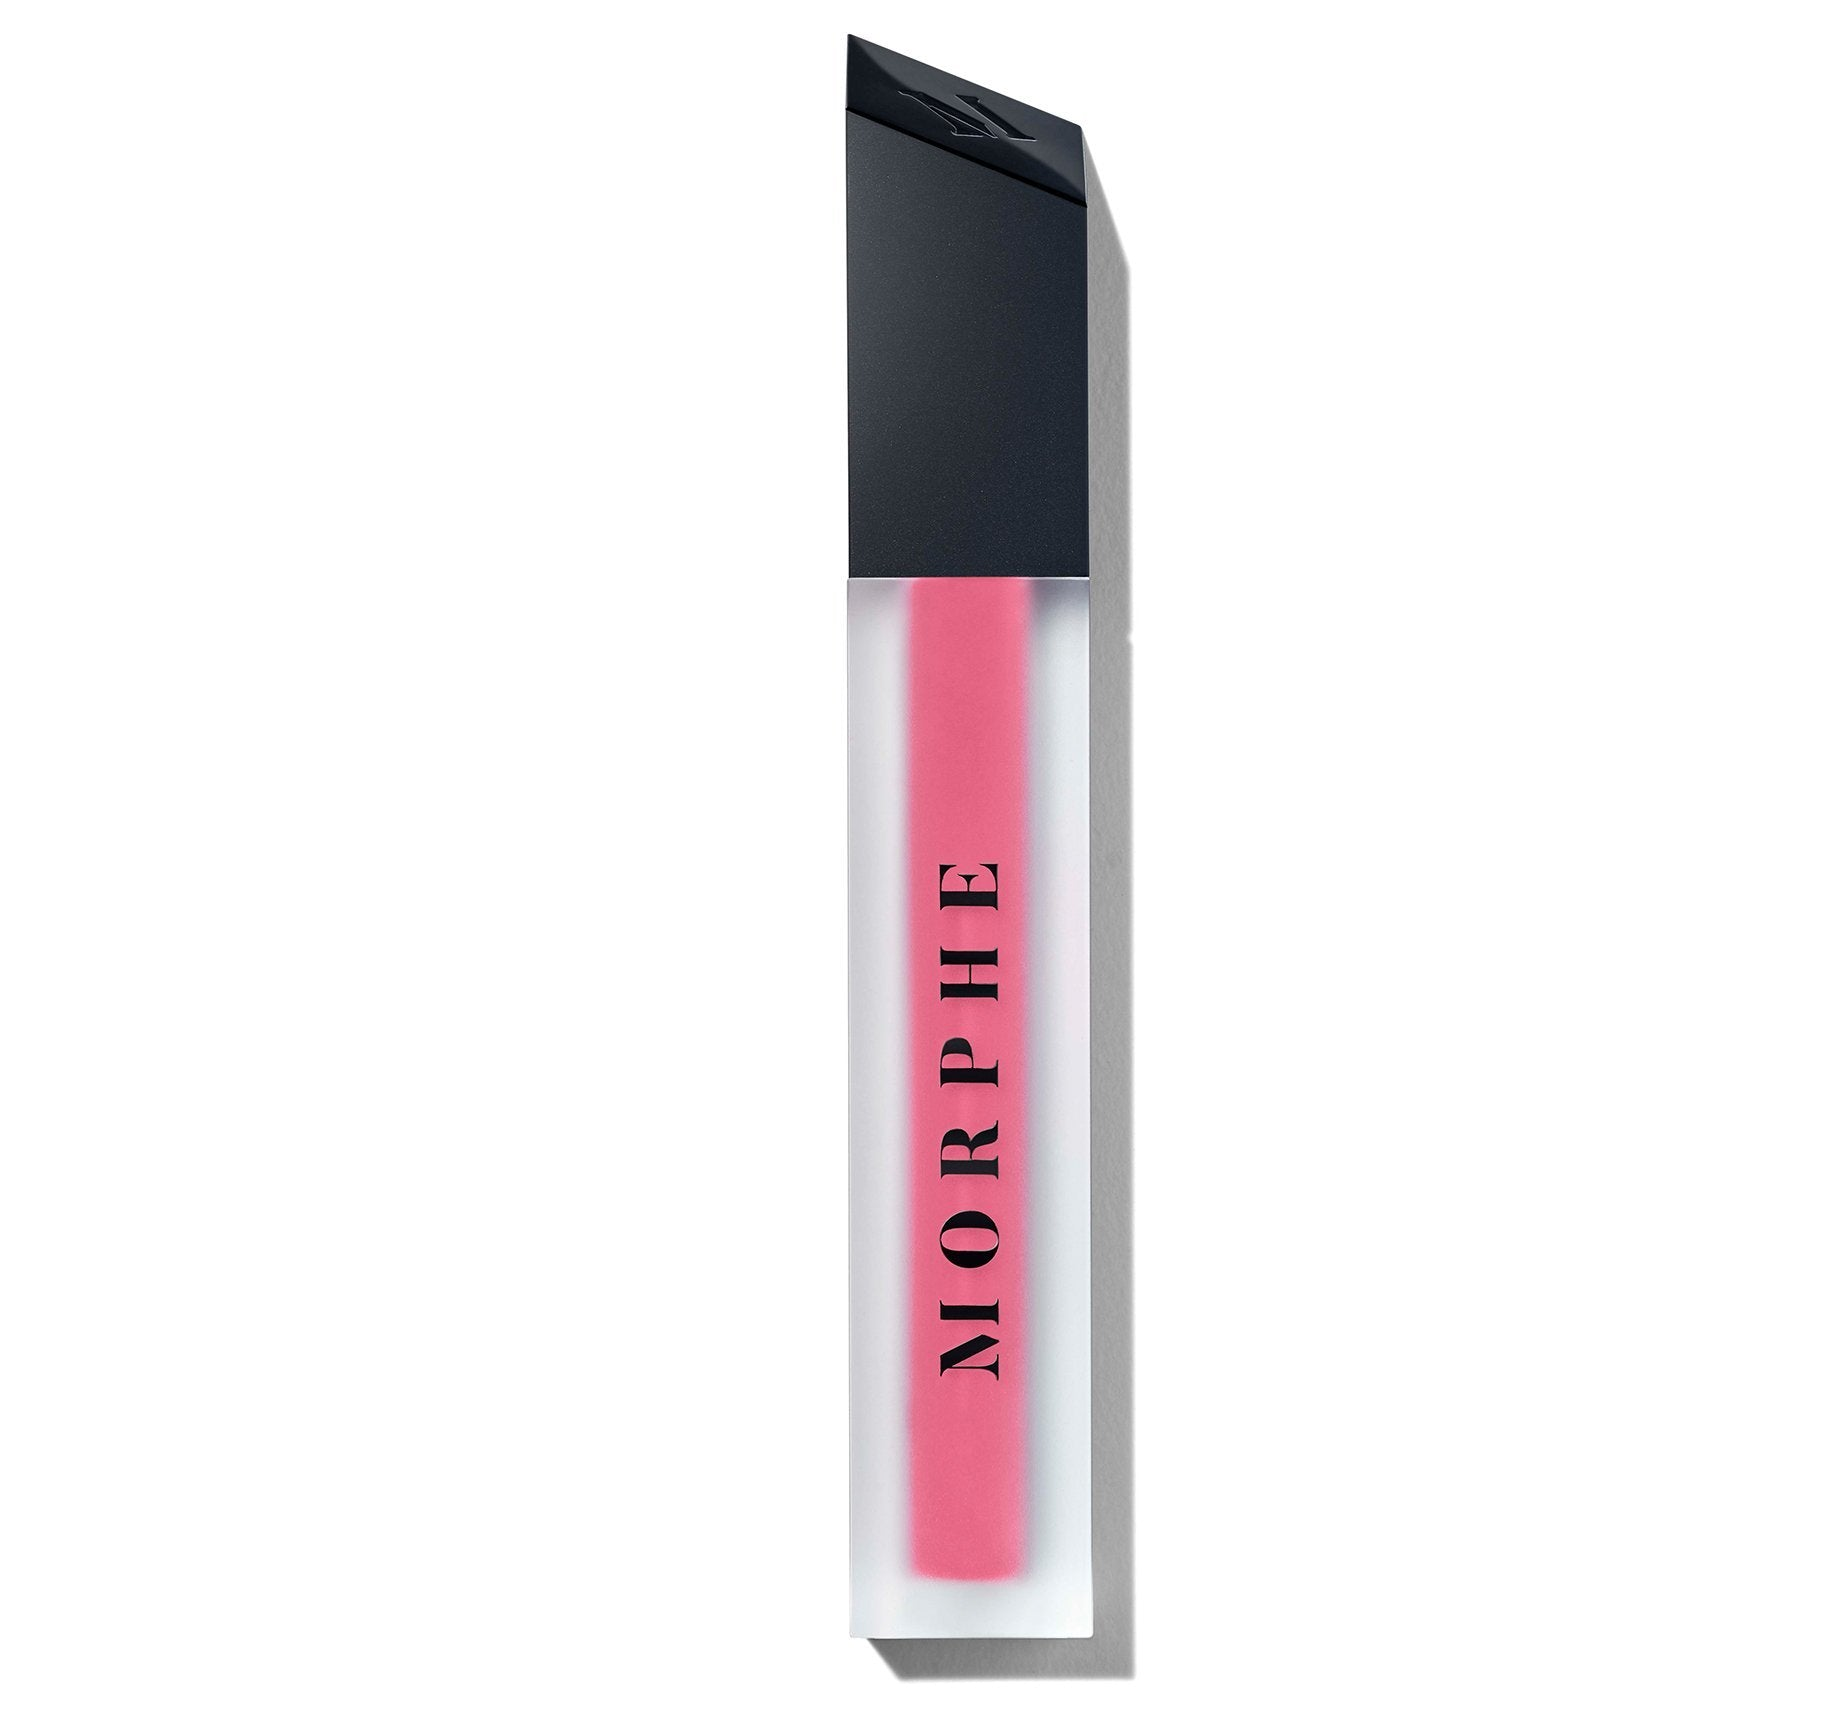 MATTE LIQUID LIPSTICK - UNSETTLED, view larger image